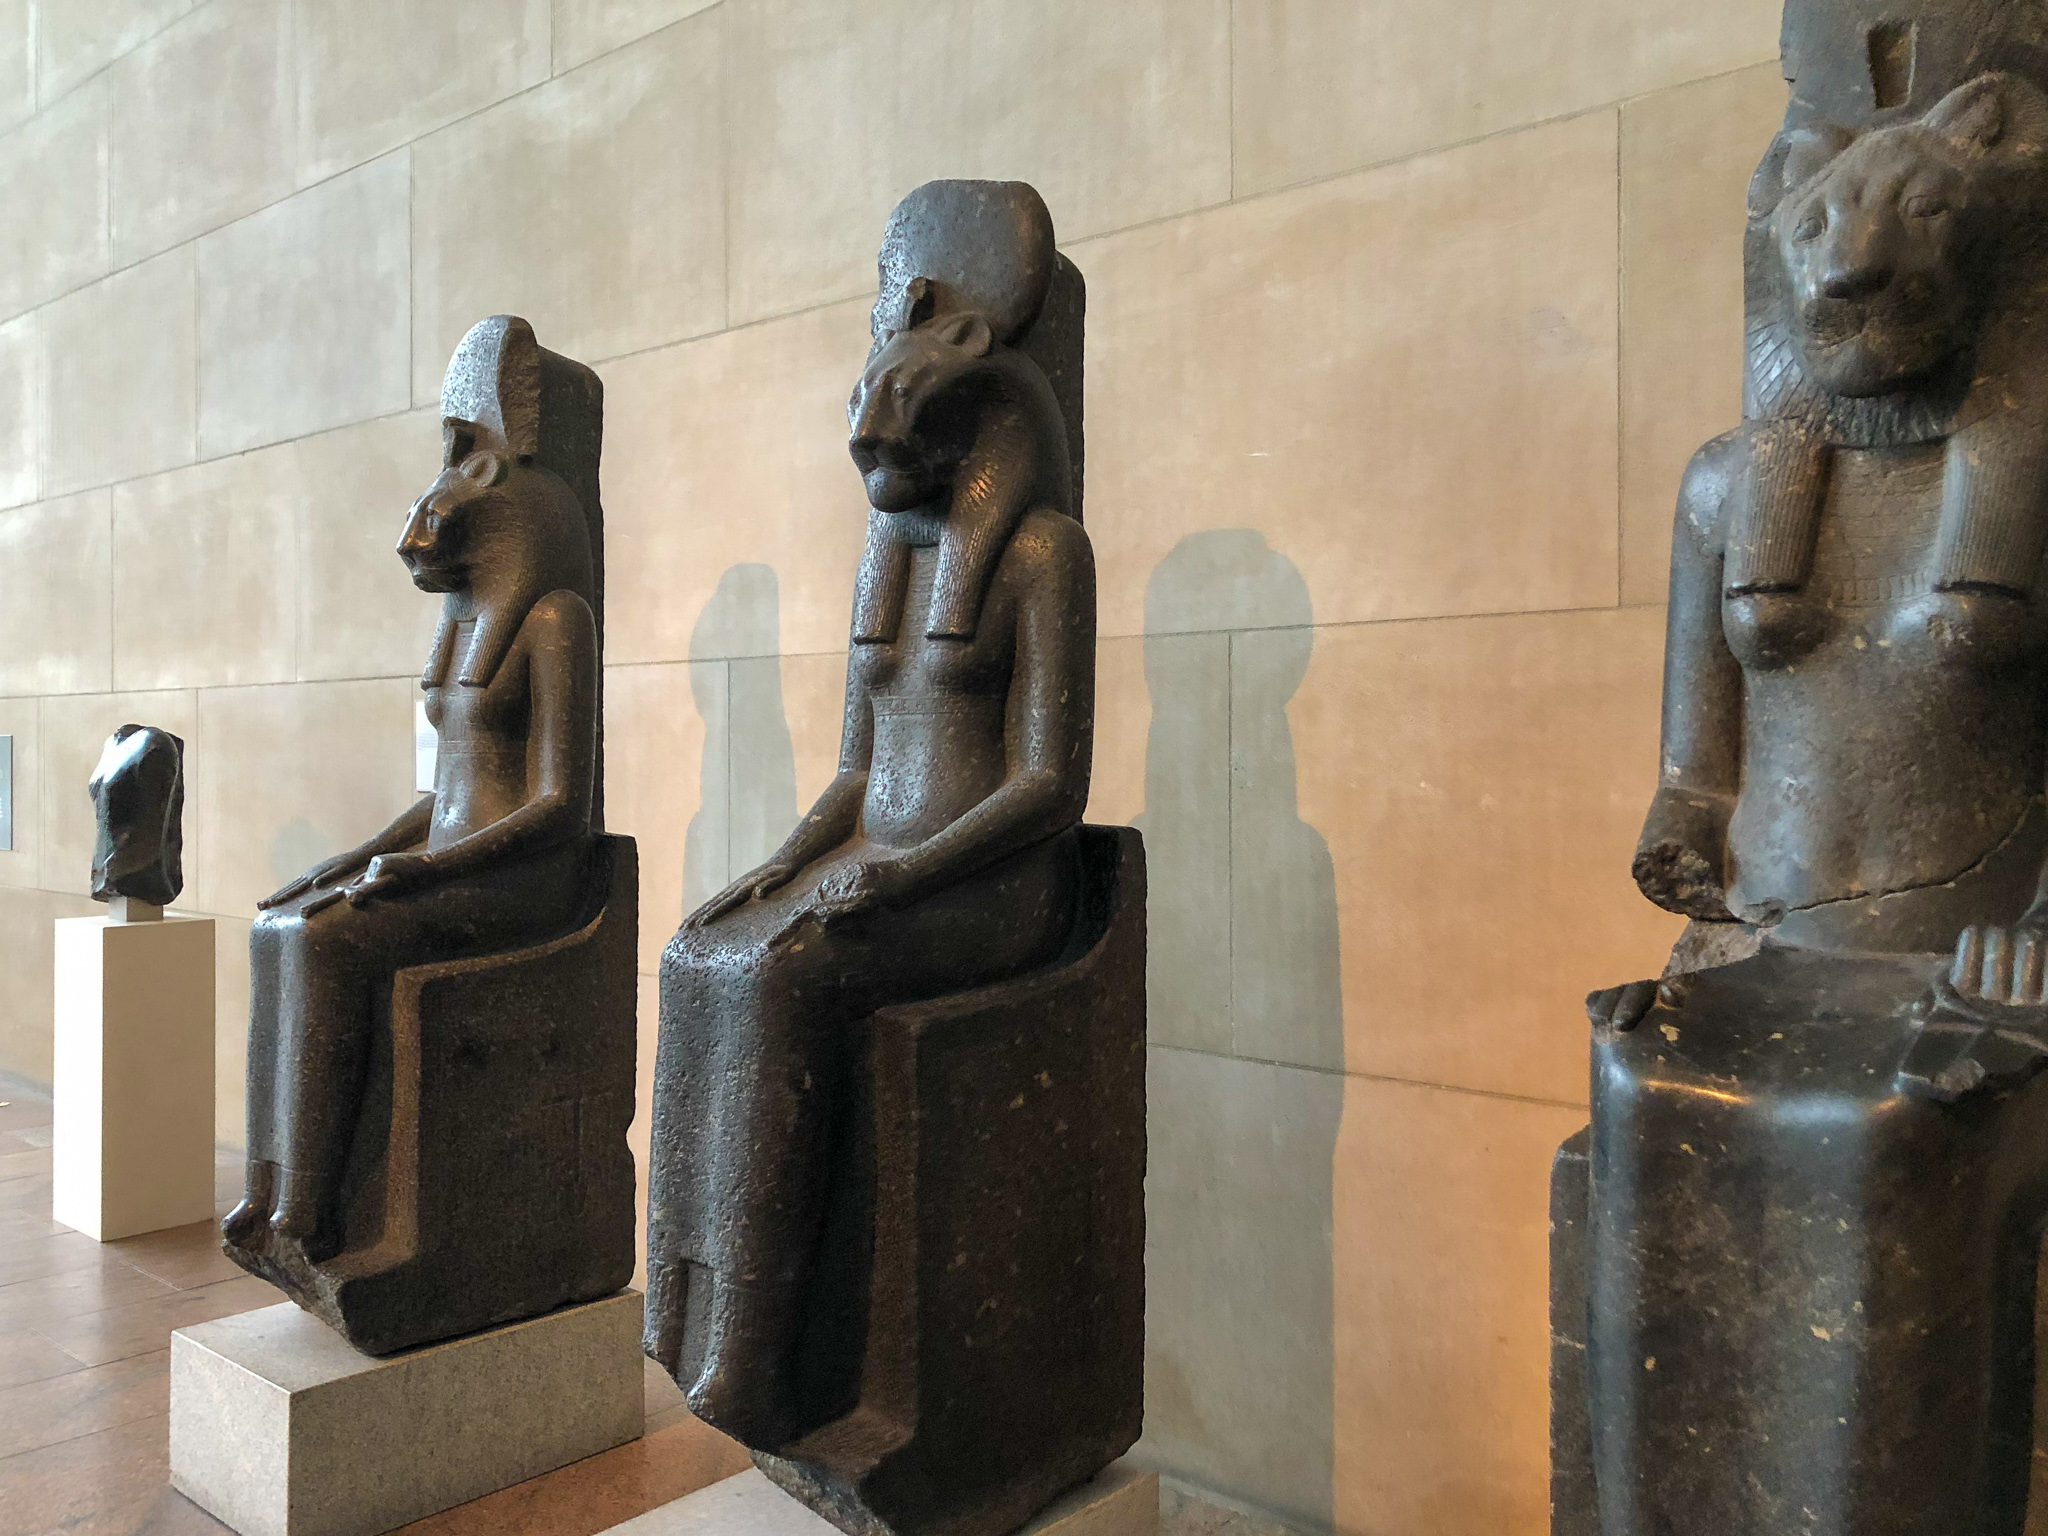 visiting the met and seeing Egyptian art